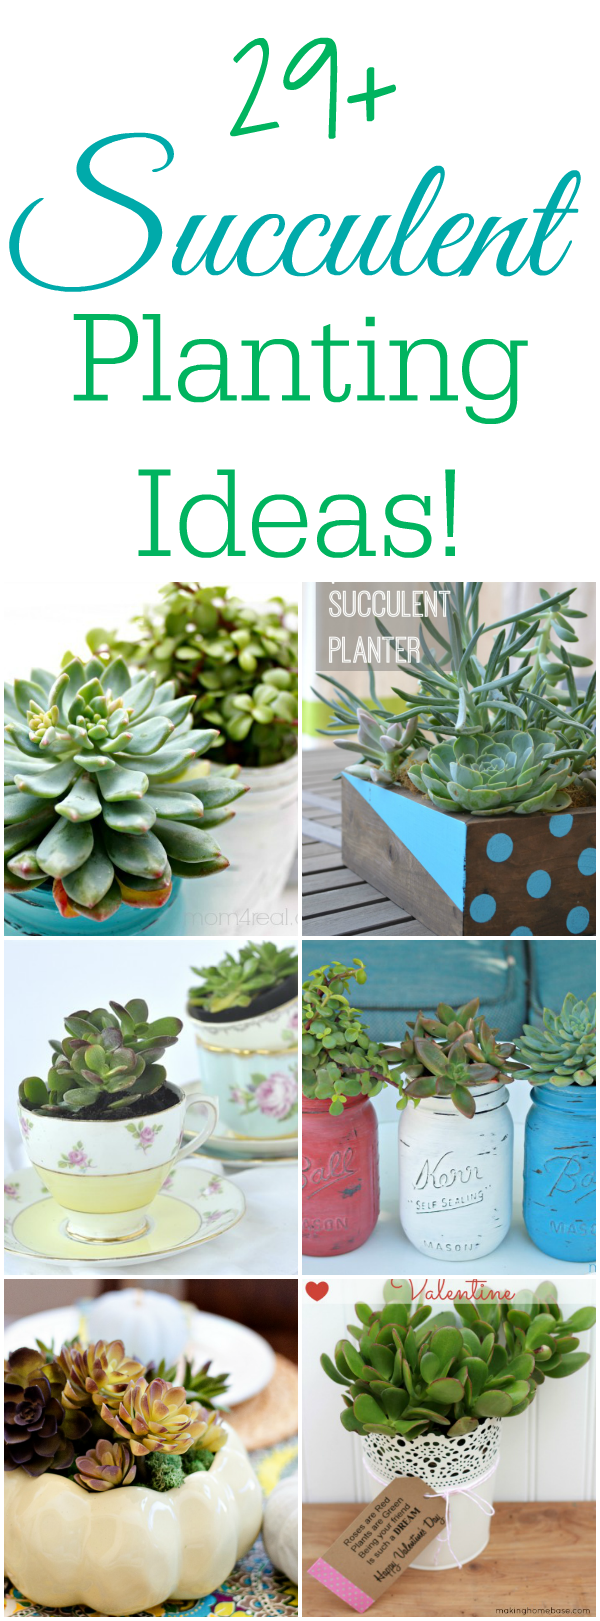 29 Plus Succulent Planting Ideas